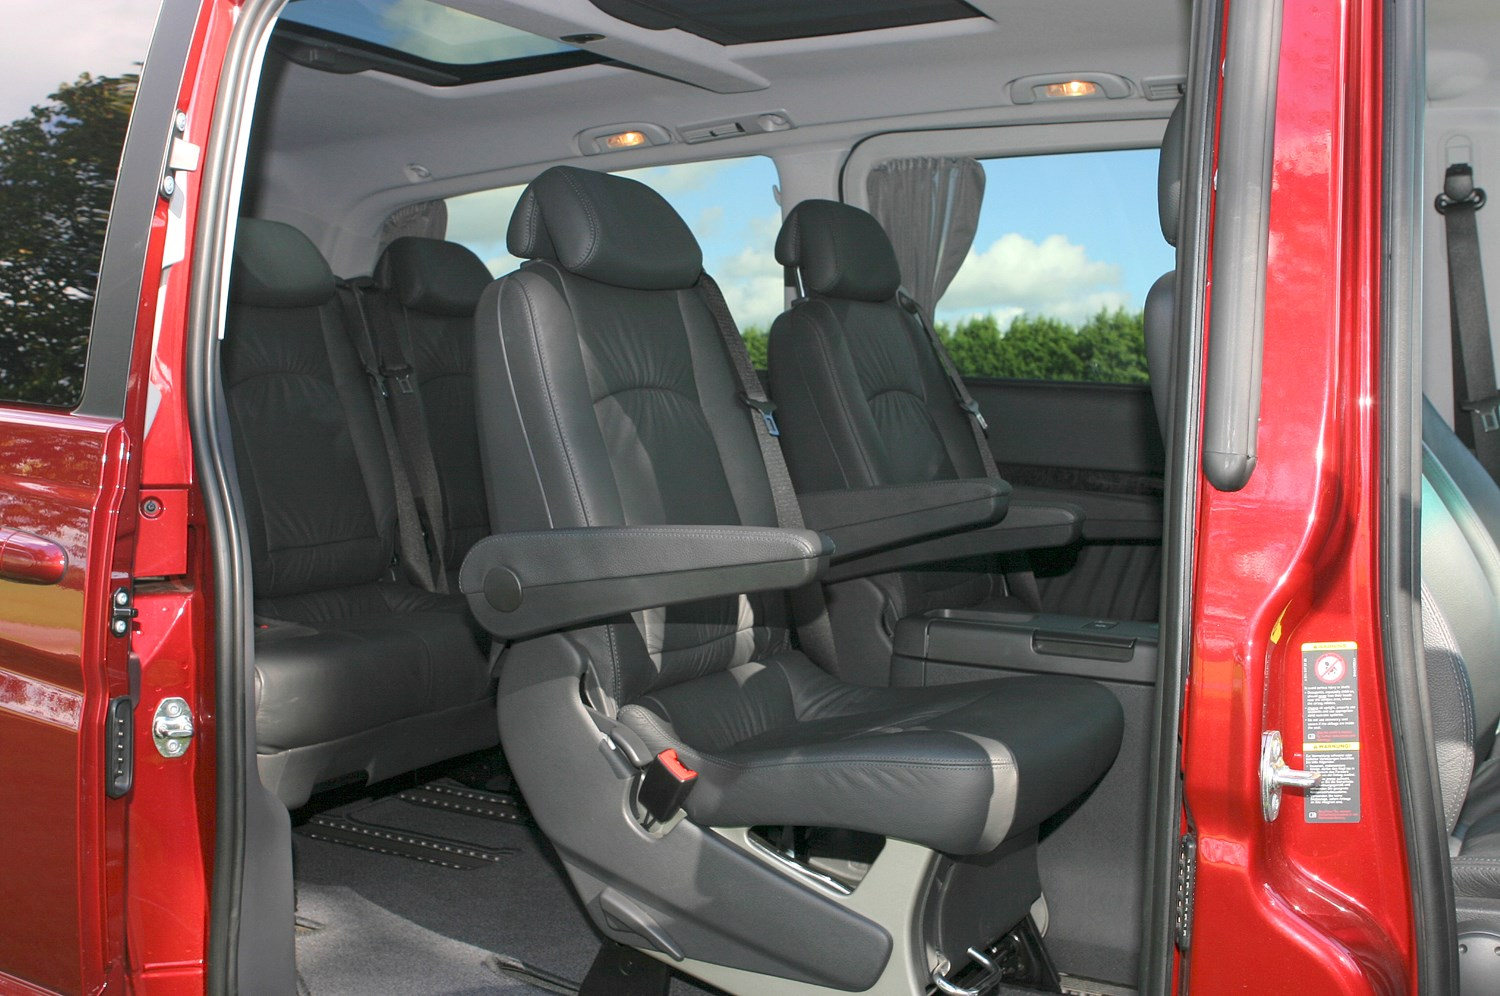 Mercedes viano review